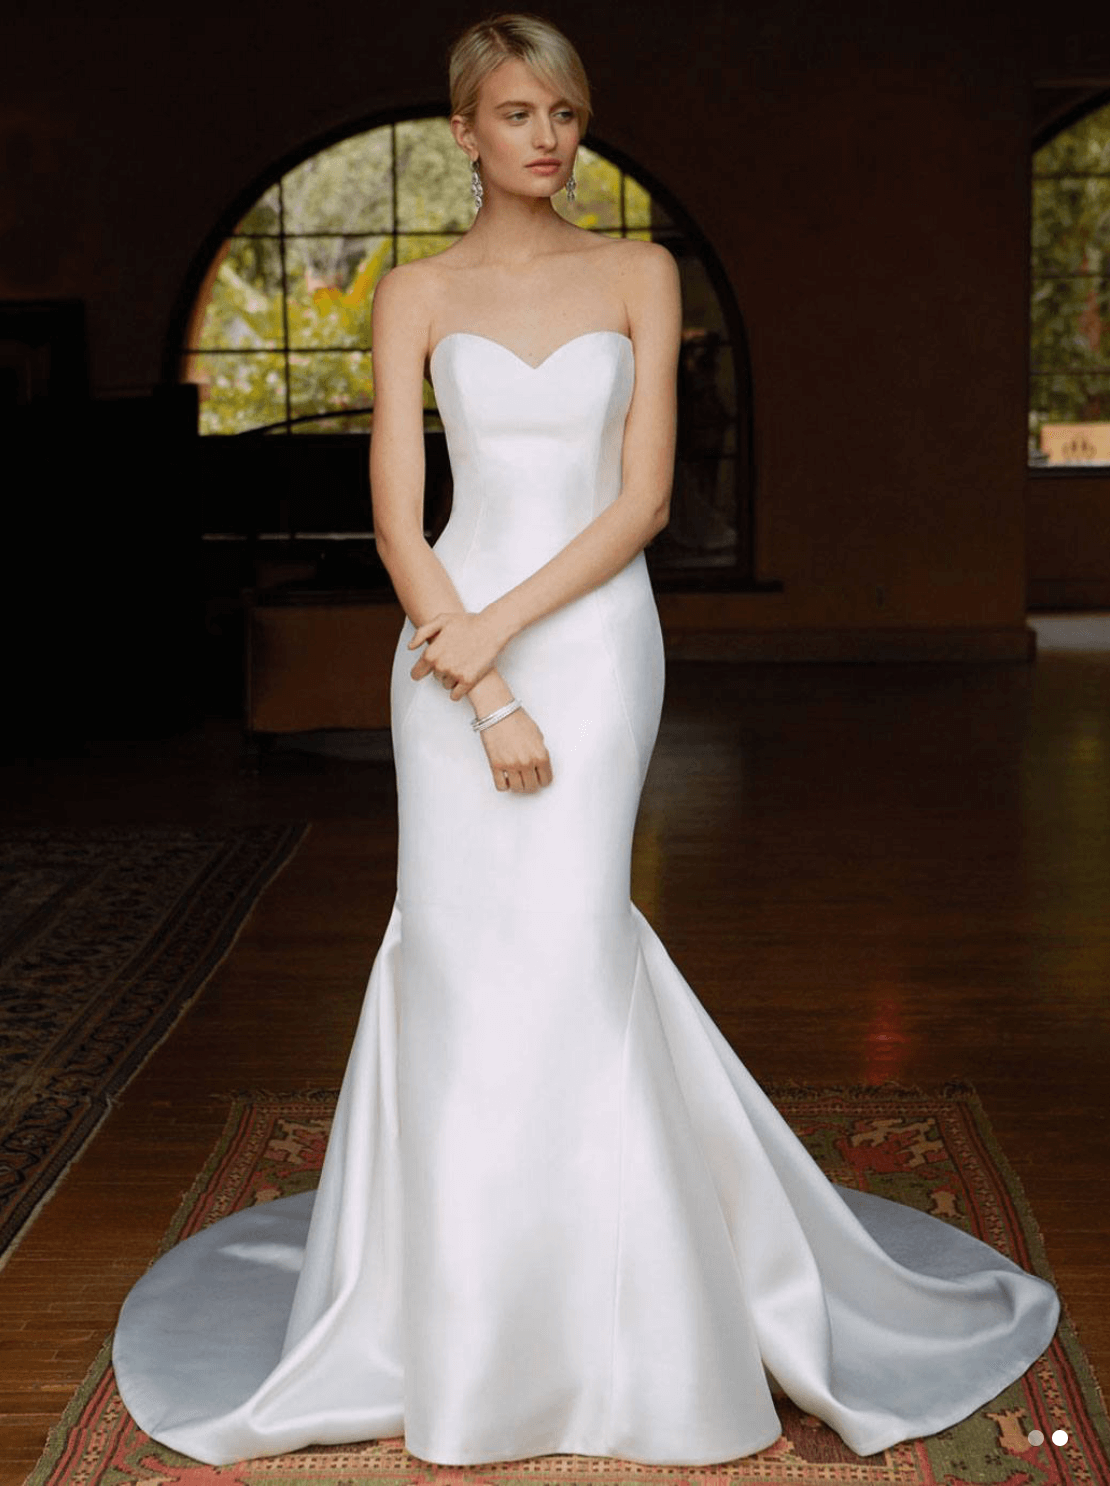 Enzoani – Size 6 Trumpet dress | Second hand wedding dresses Windsor - Size 6